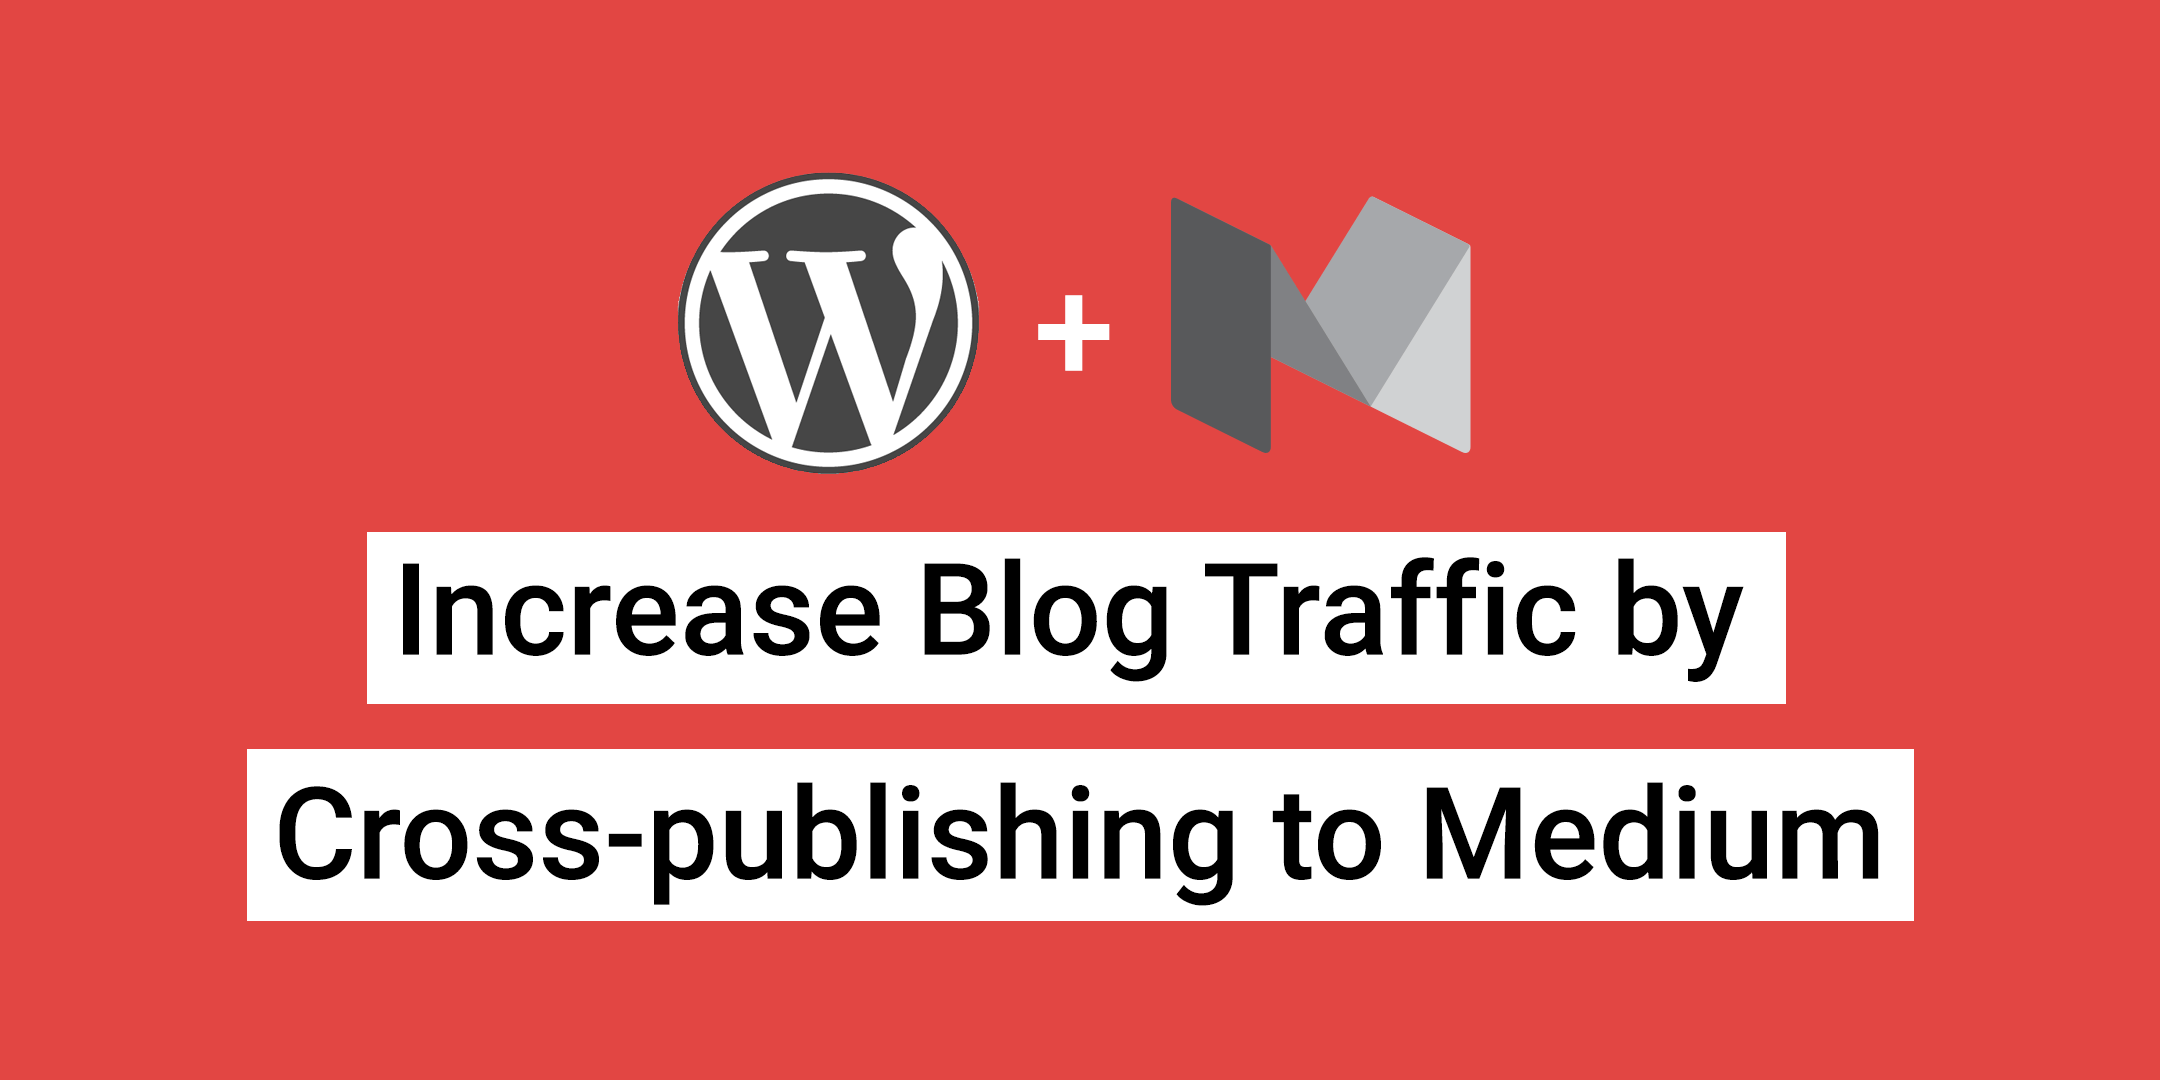 Increase Blog Traffic by Cross-publishing to Medium